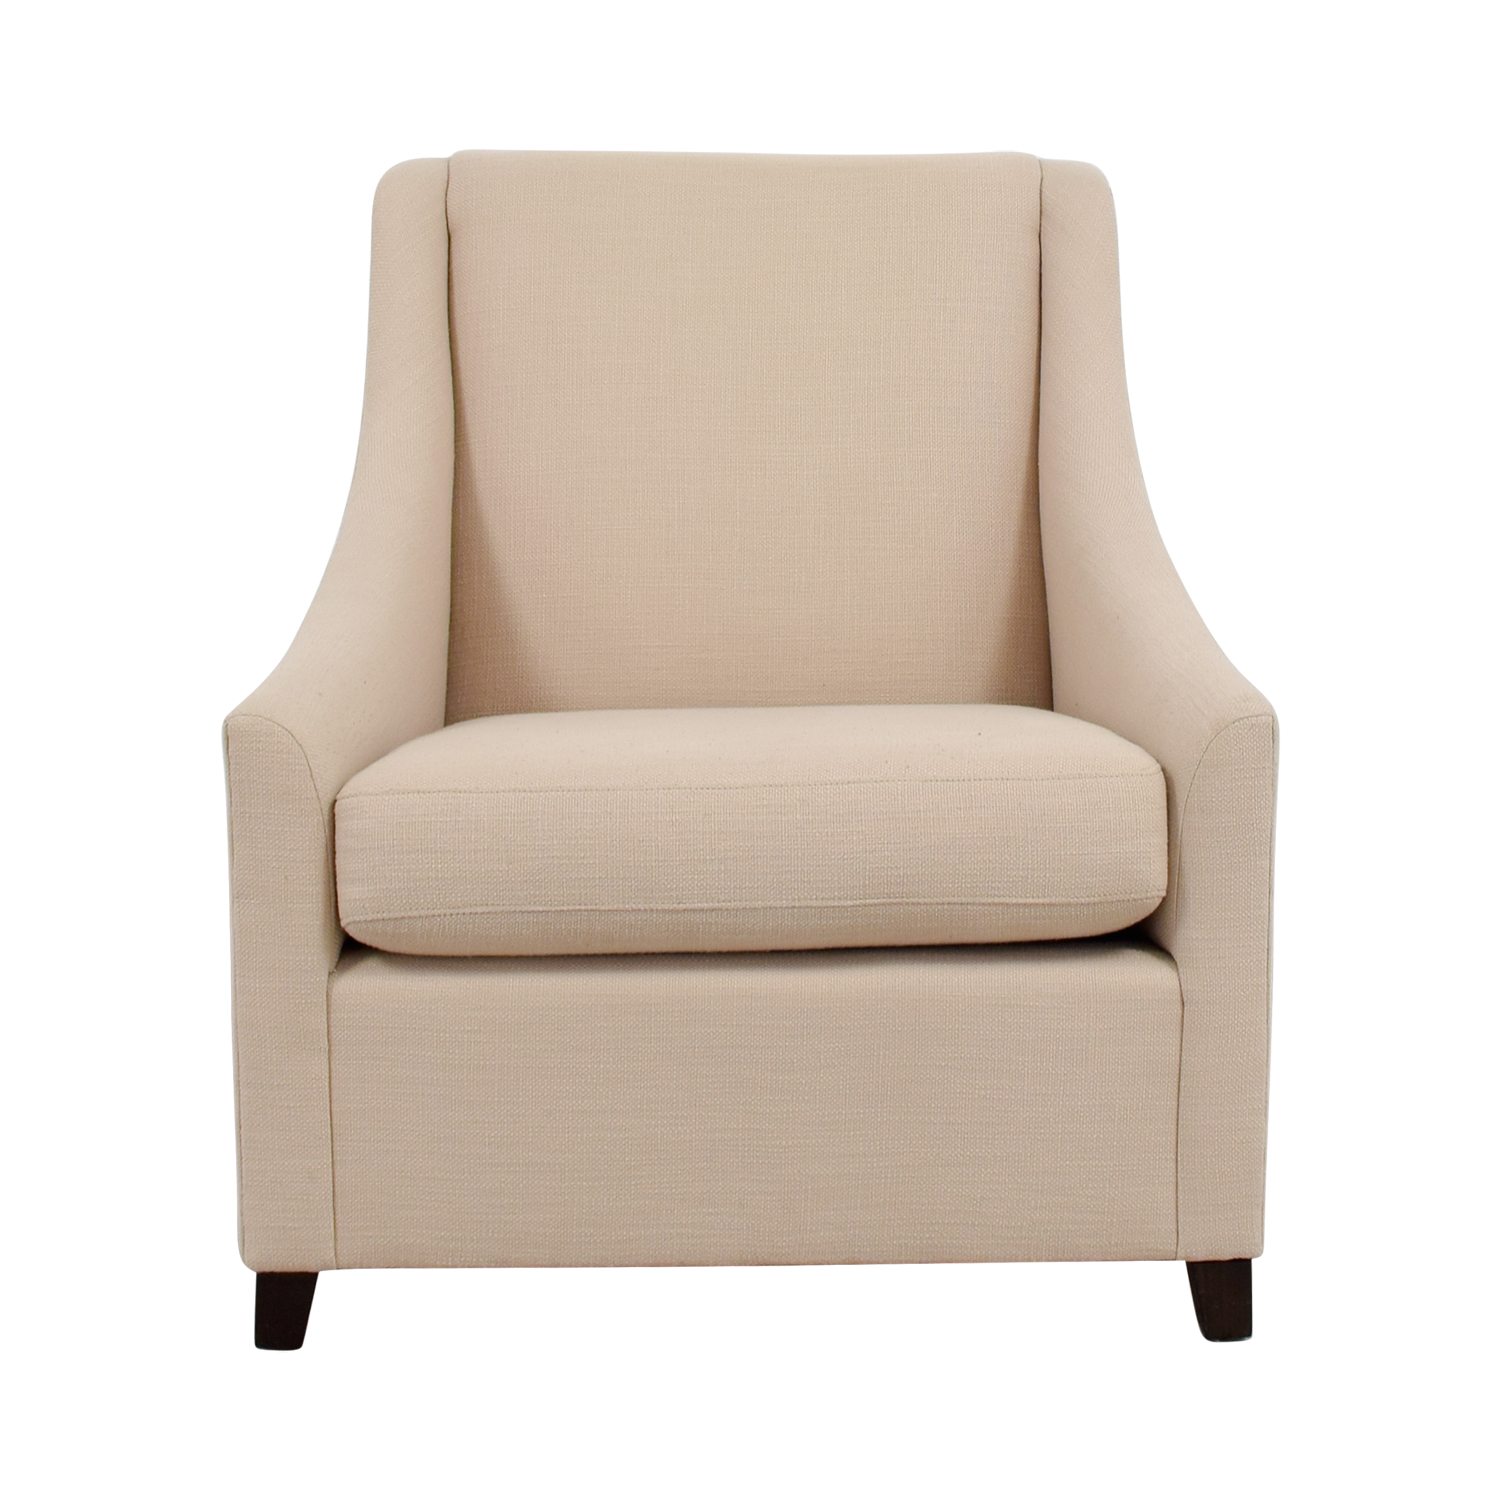 West Elm West Elm Sweep Beige Arm Chair price